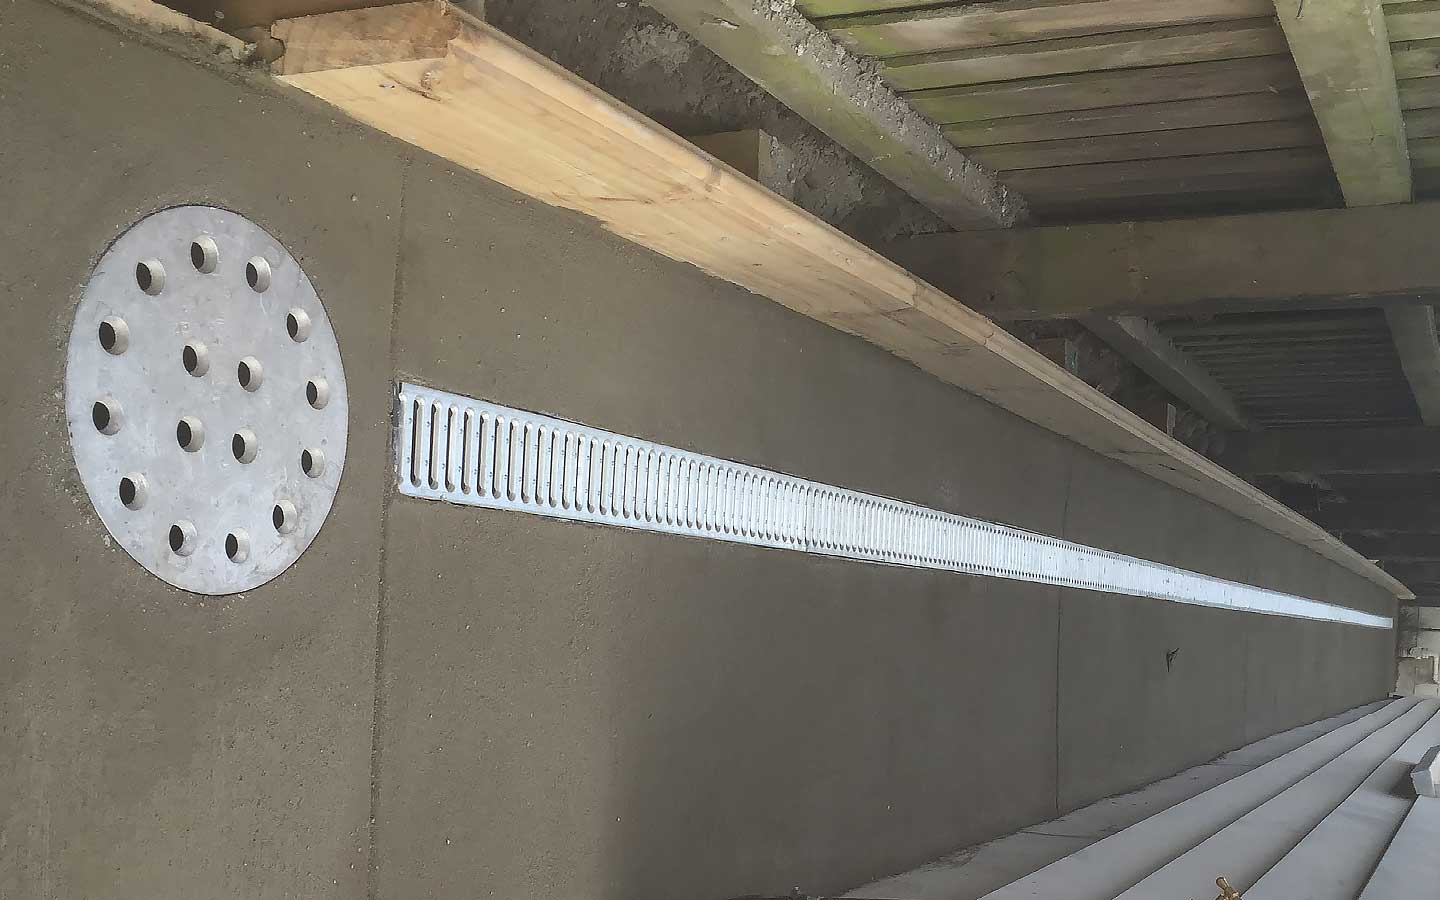 An outdoor drainage system for building code compliance.